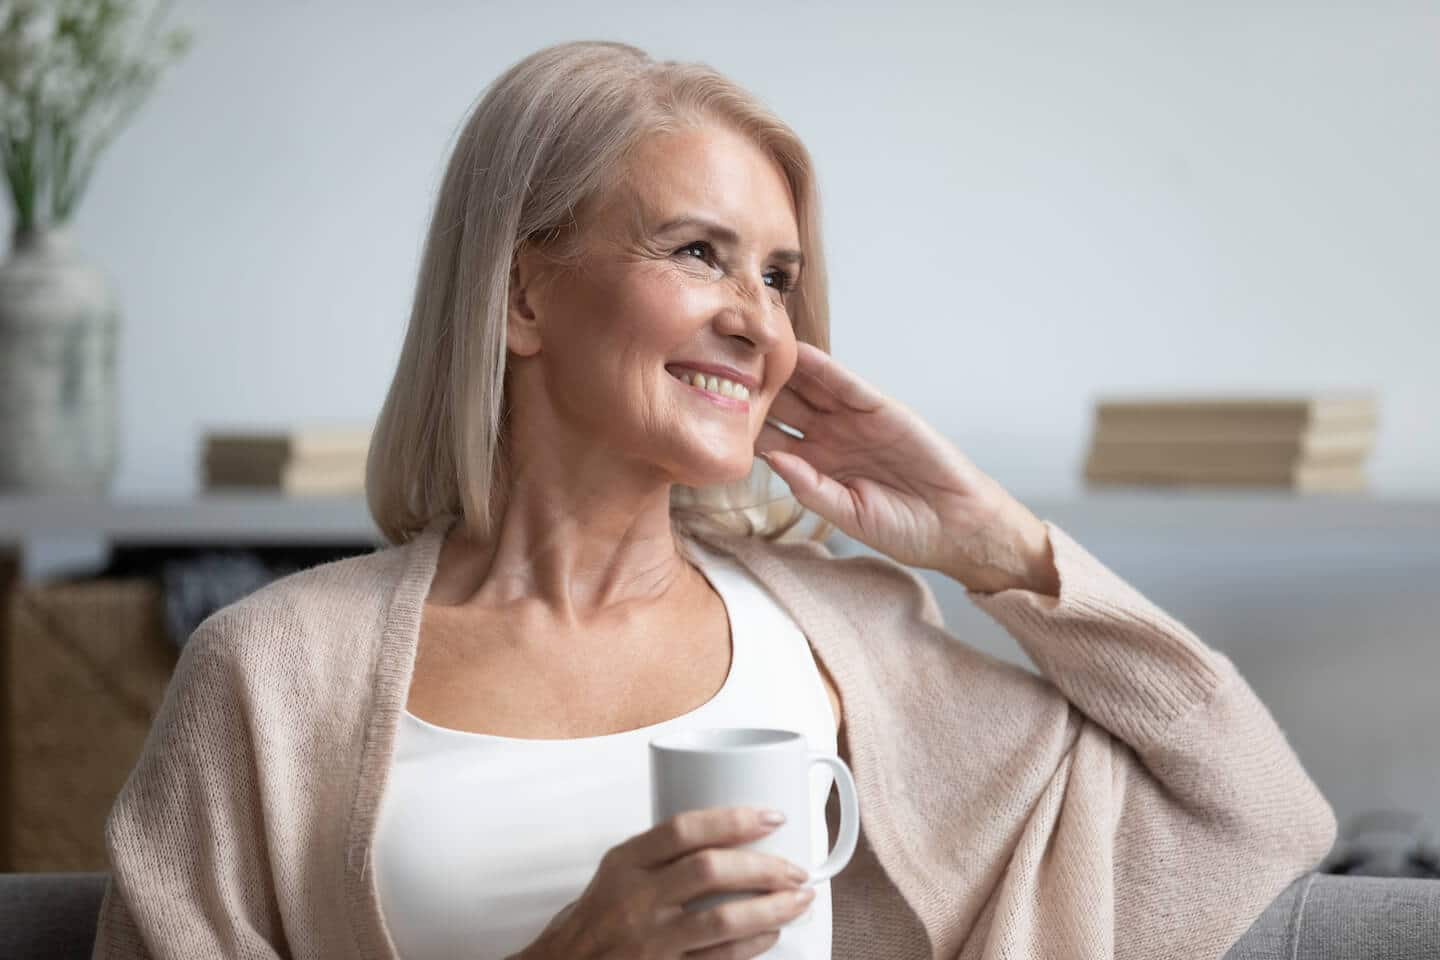 a senior woman smiling while drinking a cup of coffee